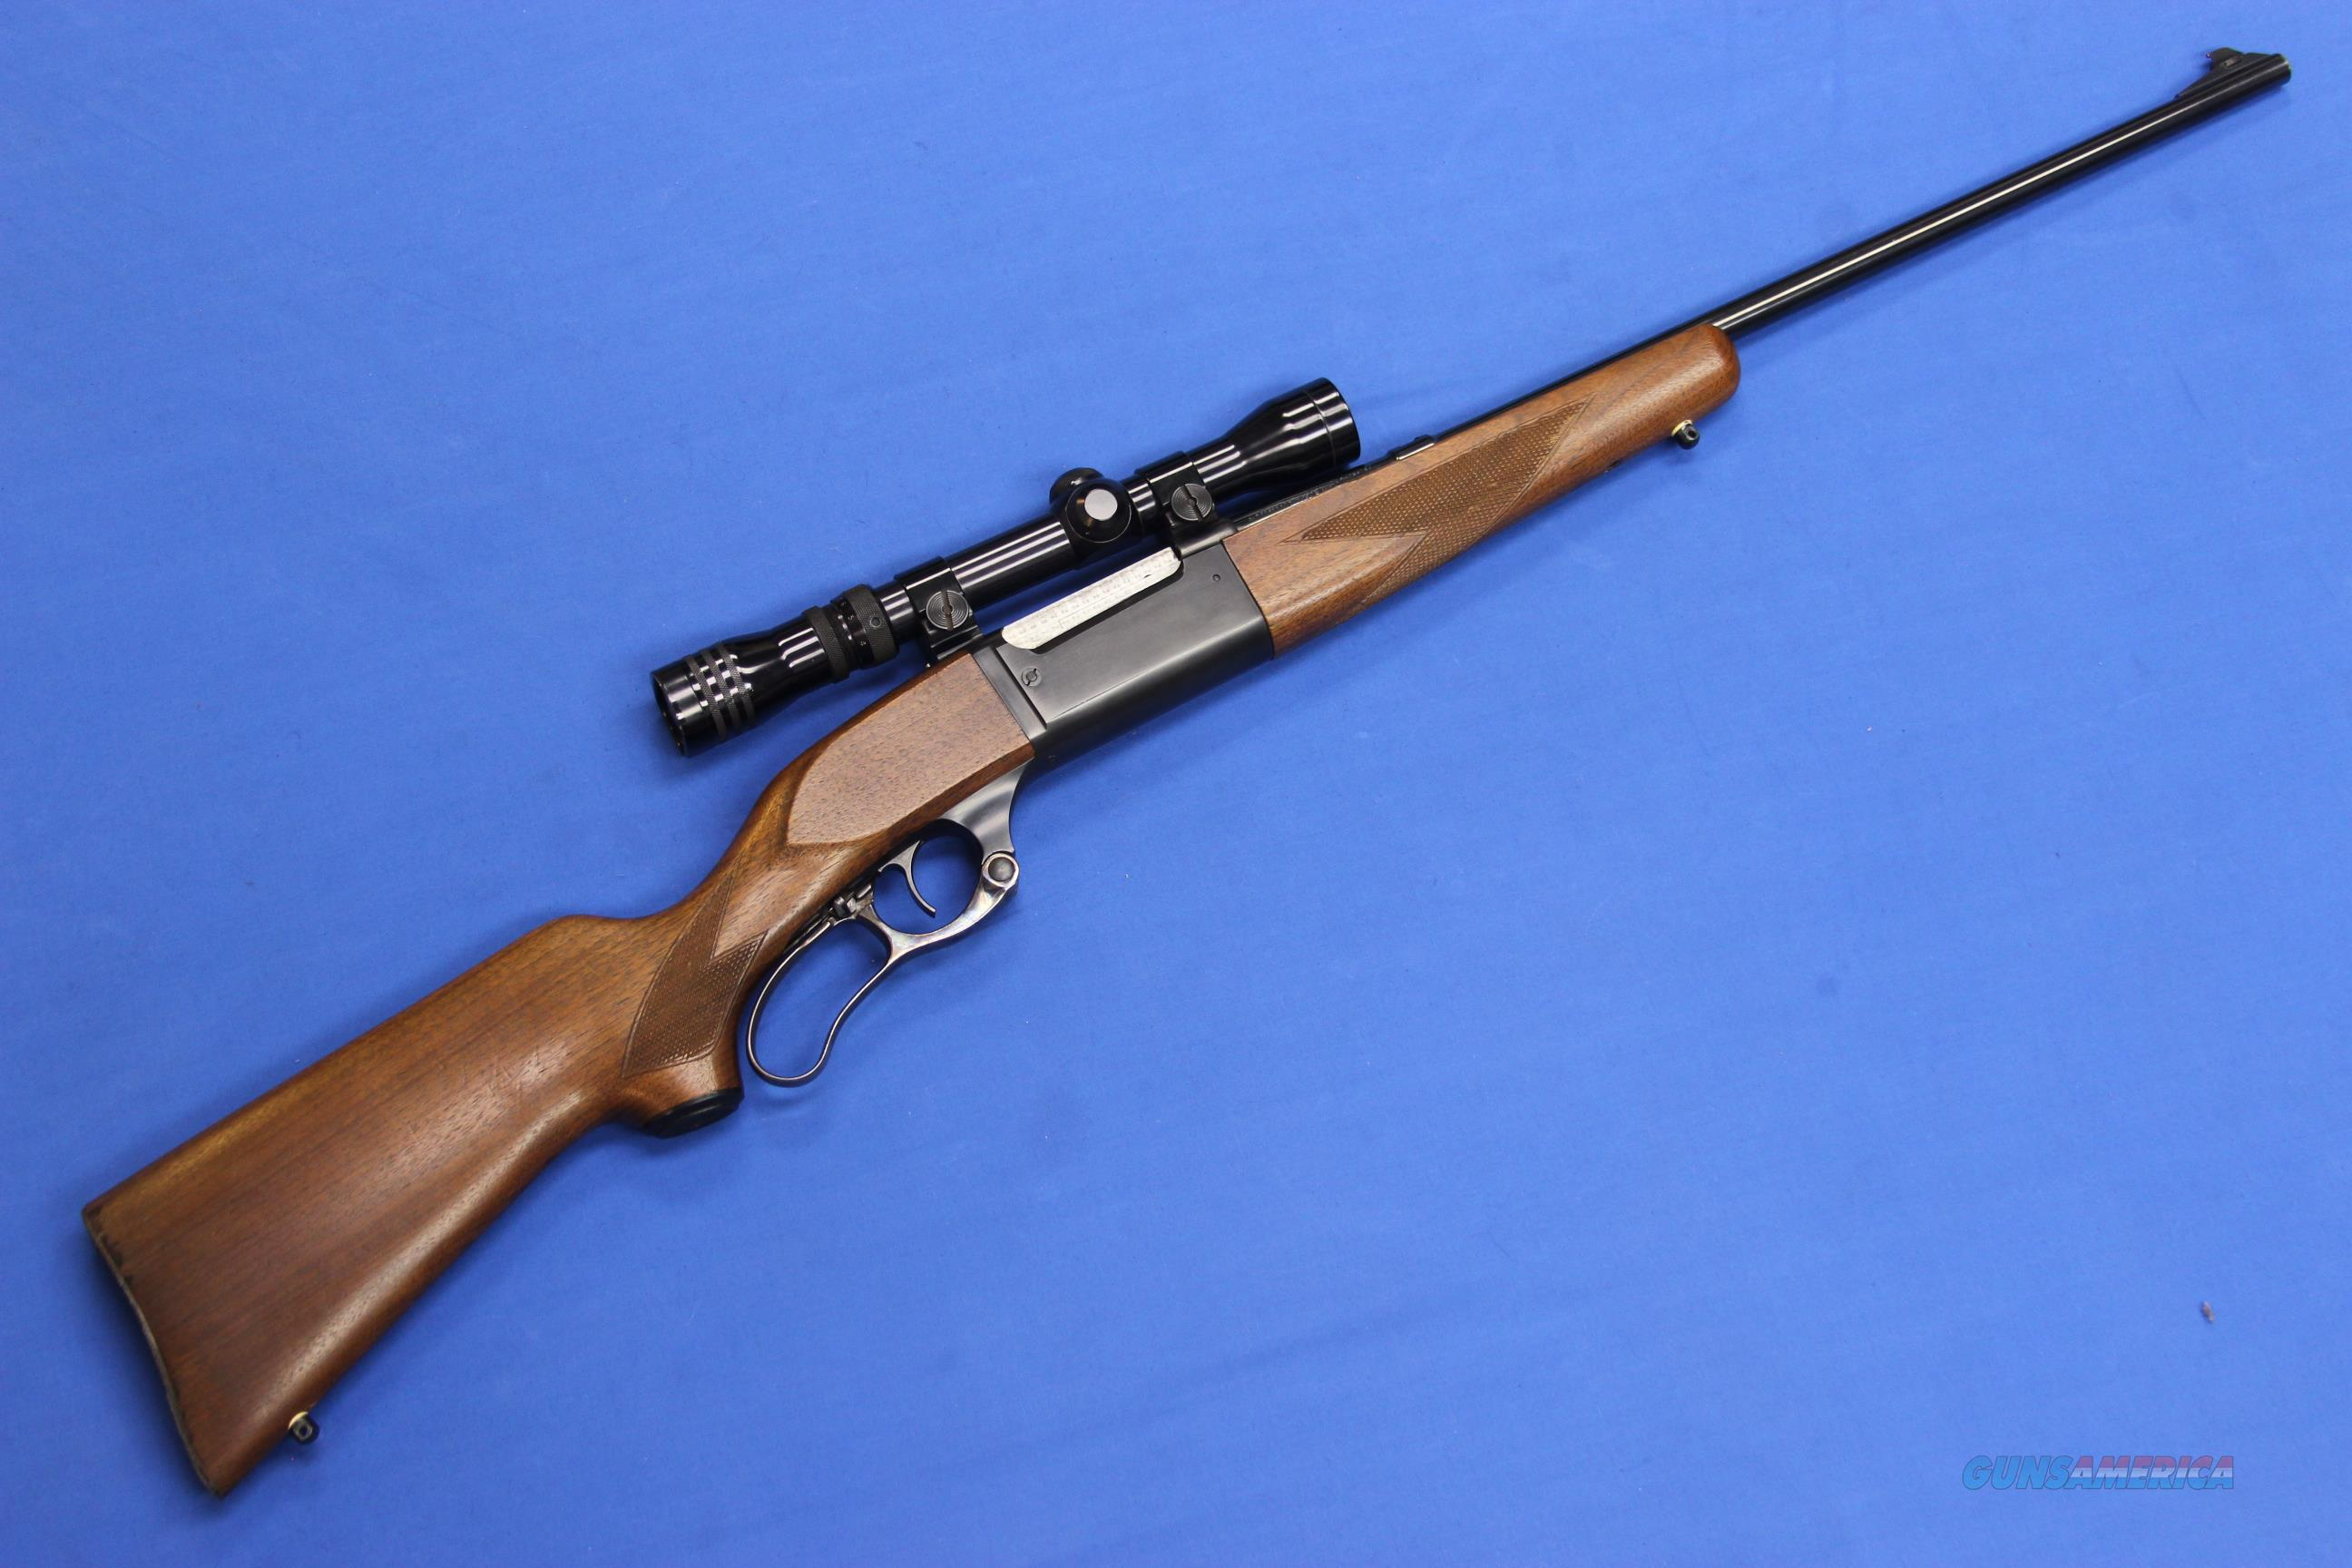 SAVAGE 99 .300 SAVAGE w/REDFIELD SCOPE for sale